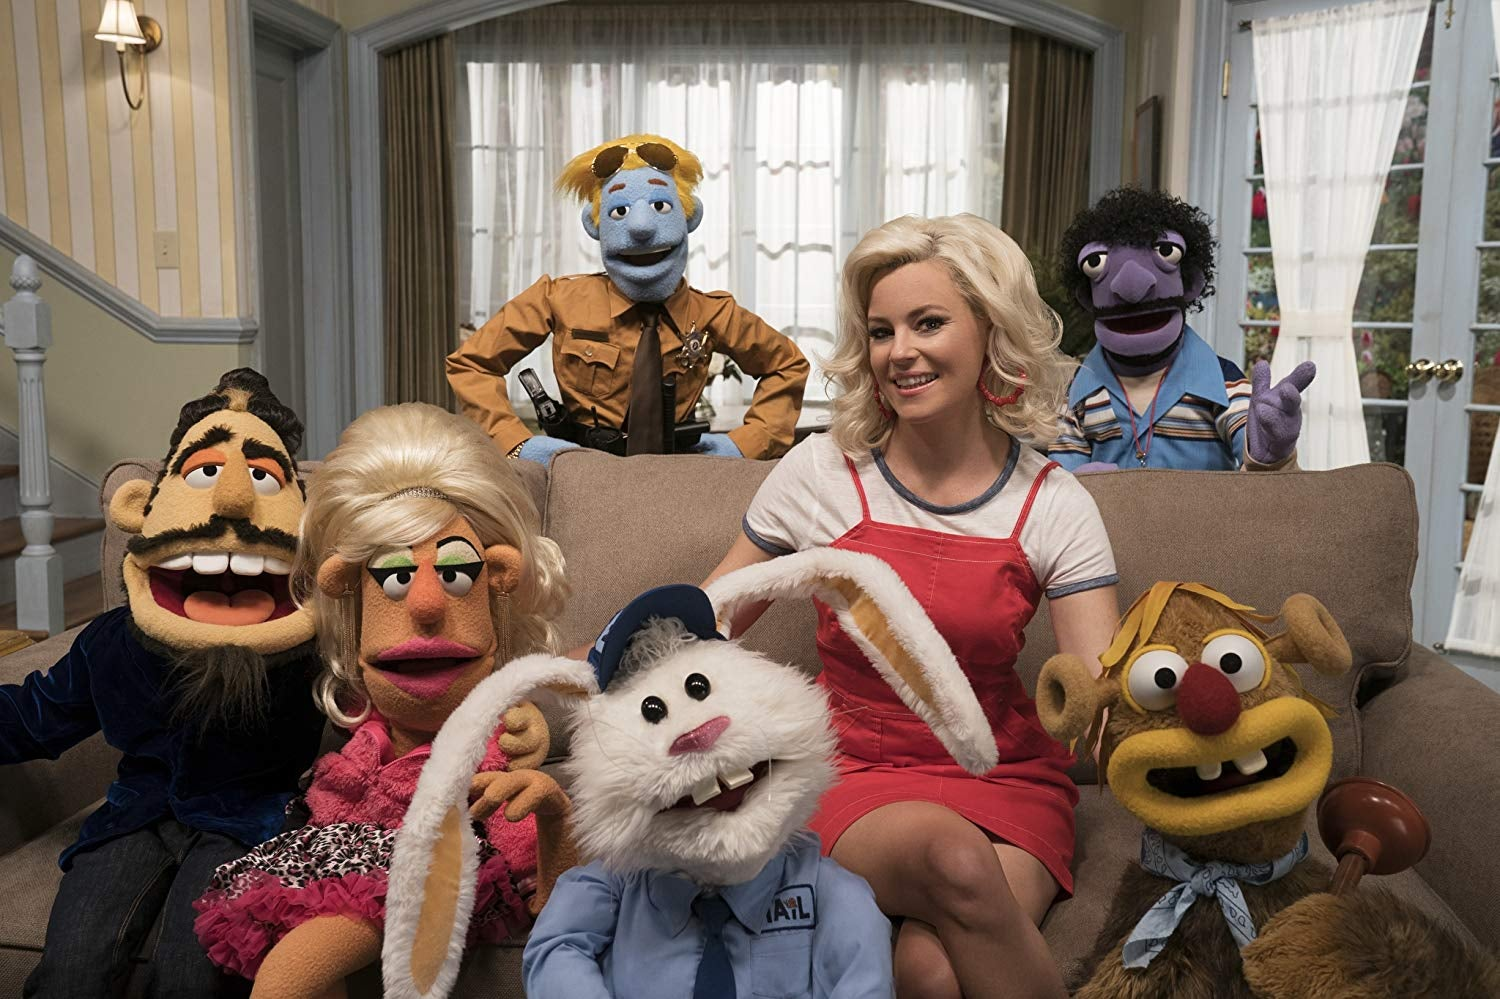 R-Rated Puppet Comedy The Happytime Murders Is A Massive Disappointment